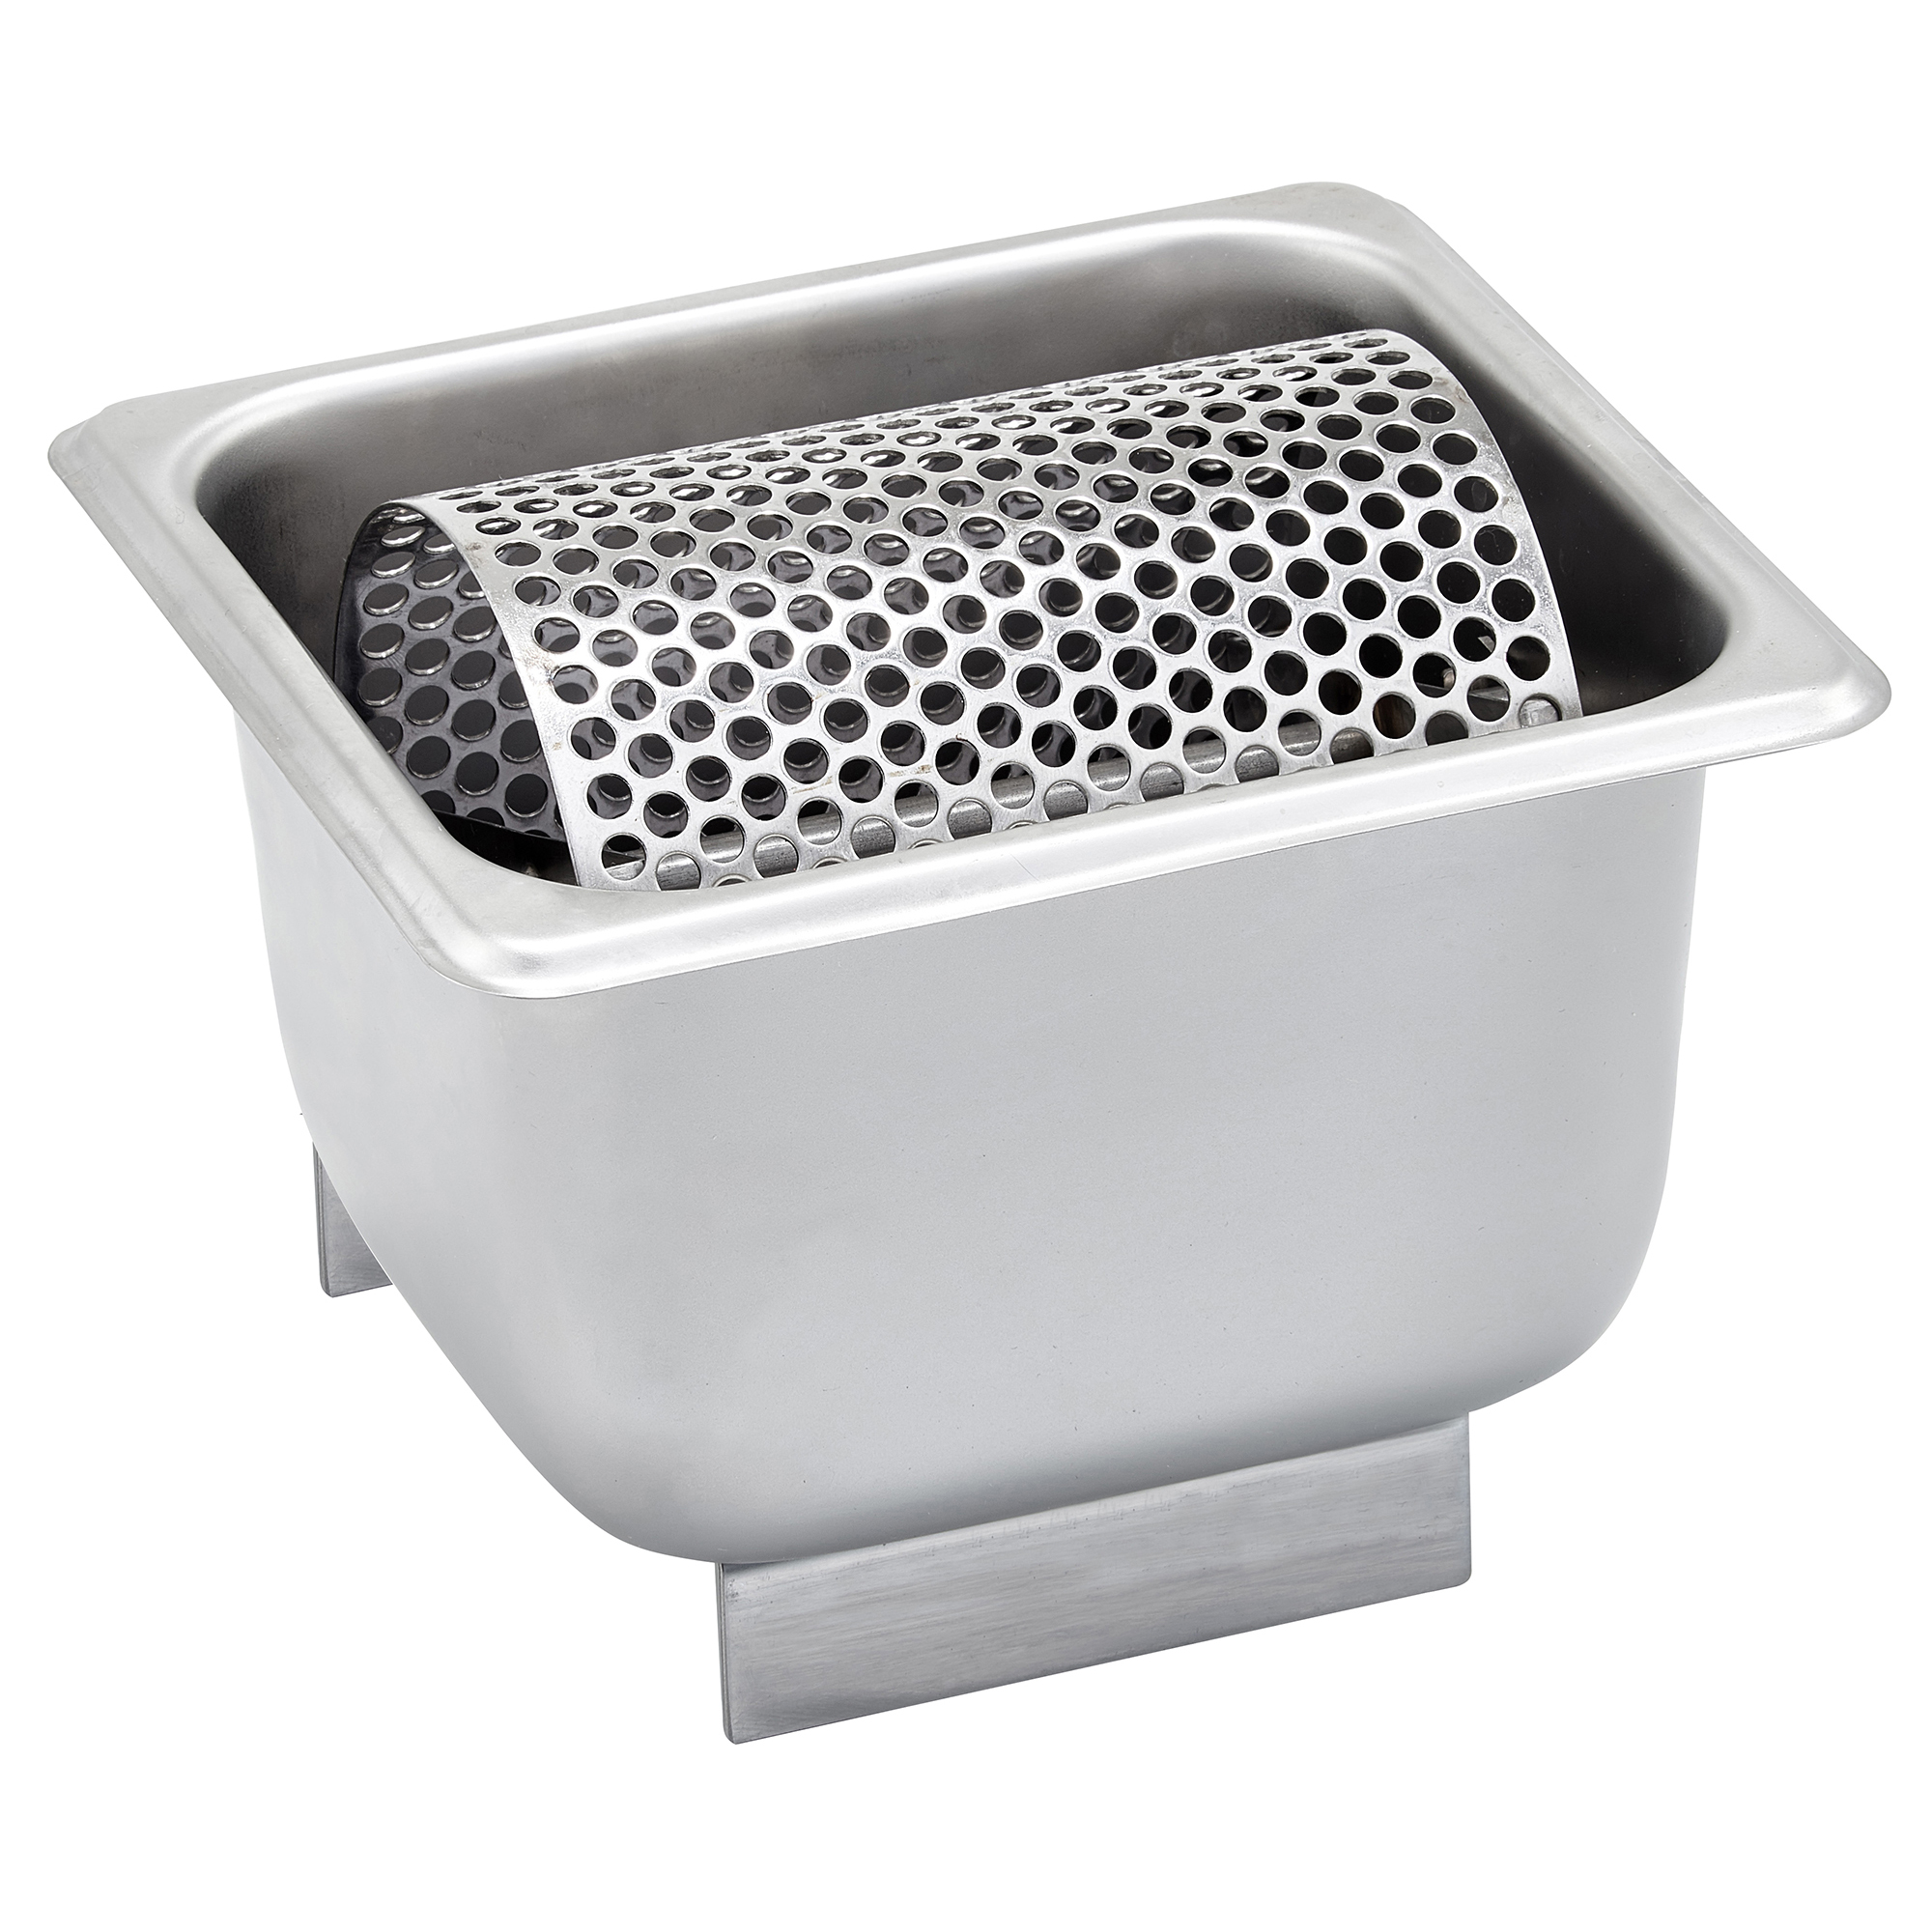 Winco SPBR-604 butter spreader